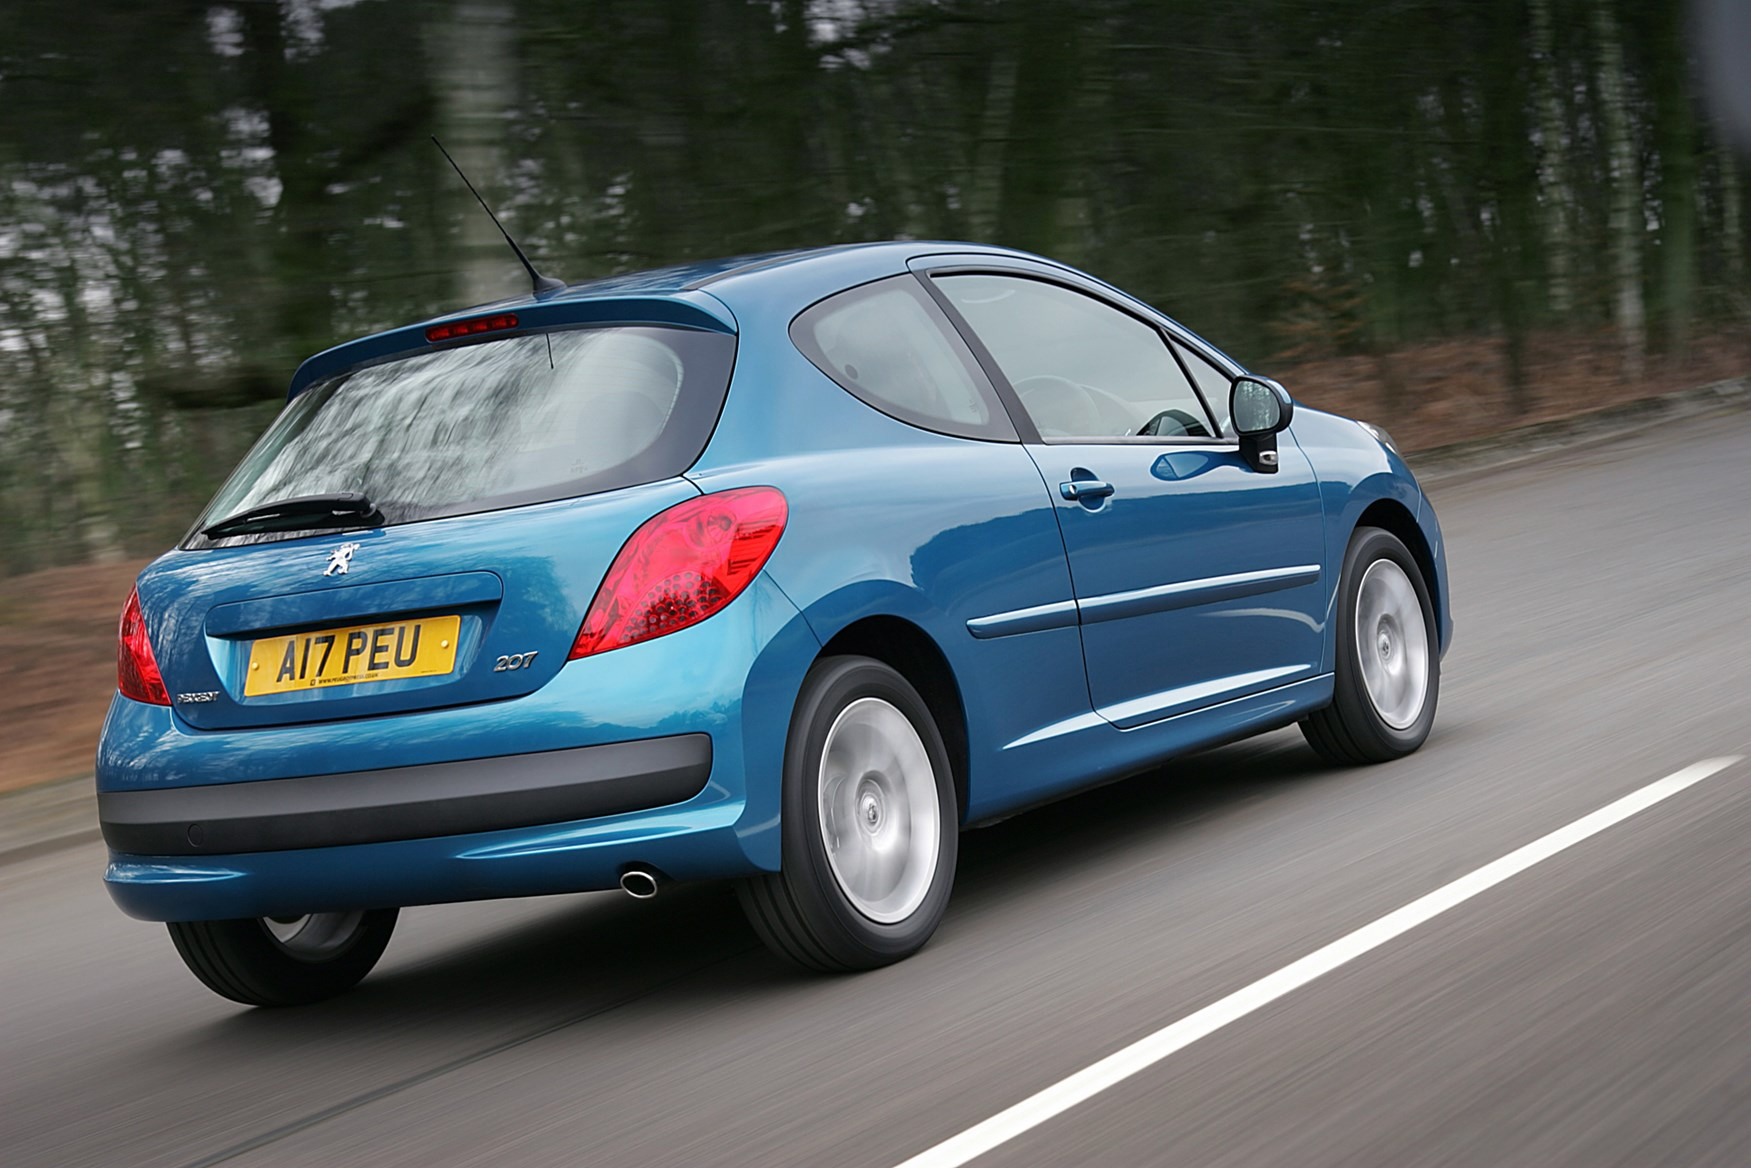 peugeot 207 hatchback 2006 2012 running costs parkers. Black Bedroom Furniture Sets. Home Design Ideas